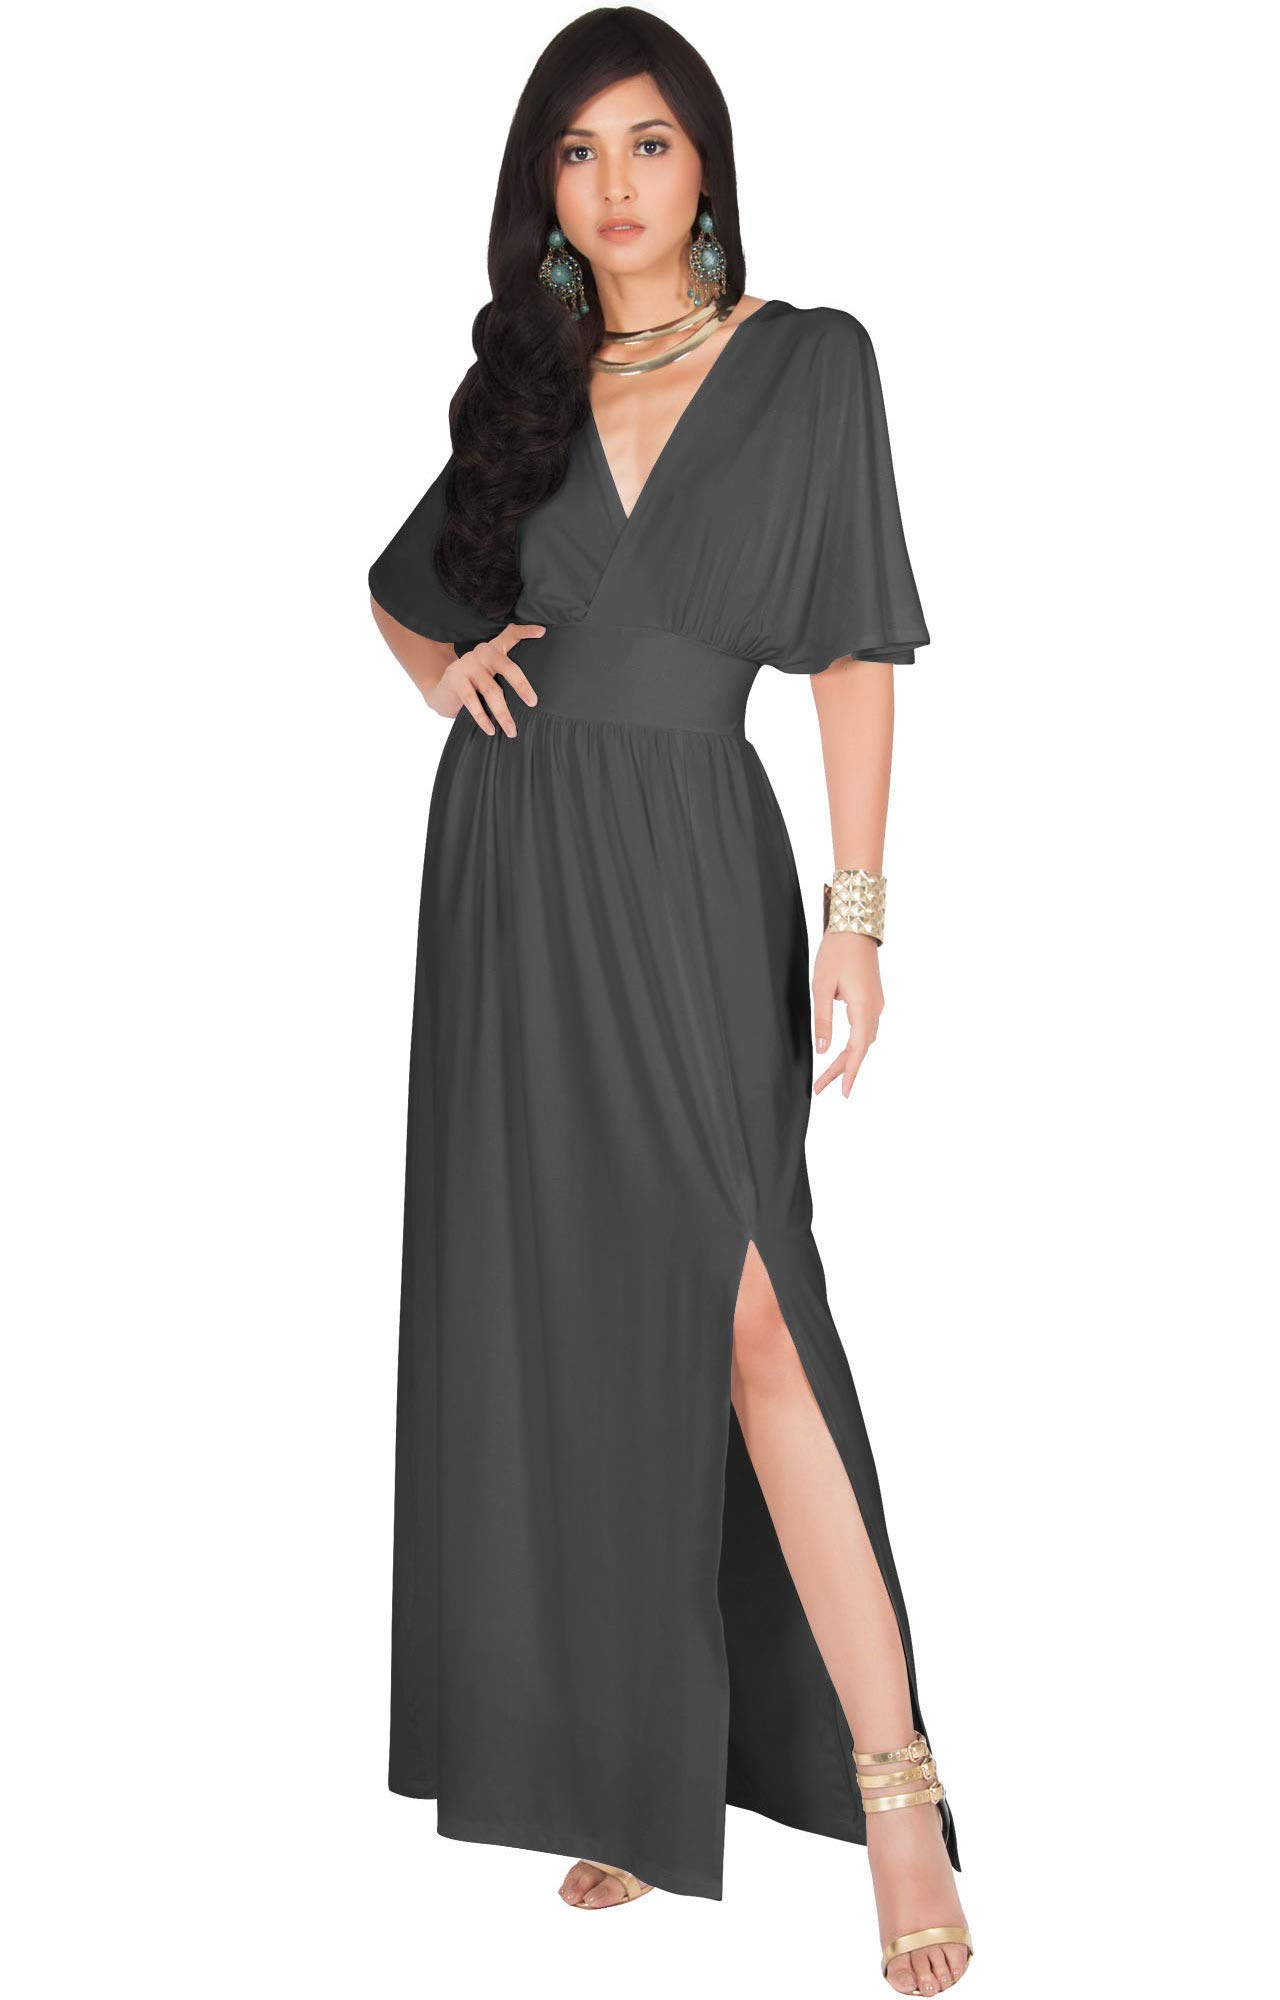 ca5386ed282 KOH KOH Plus Size Womens Long Sexy Kimono Short Sleeve Slit Split V-Neck  Party Cocktail Evening Bridesmaid Wedding Guest Sun Gown Gowns Maxi Dress  Dresses ...